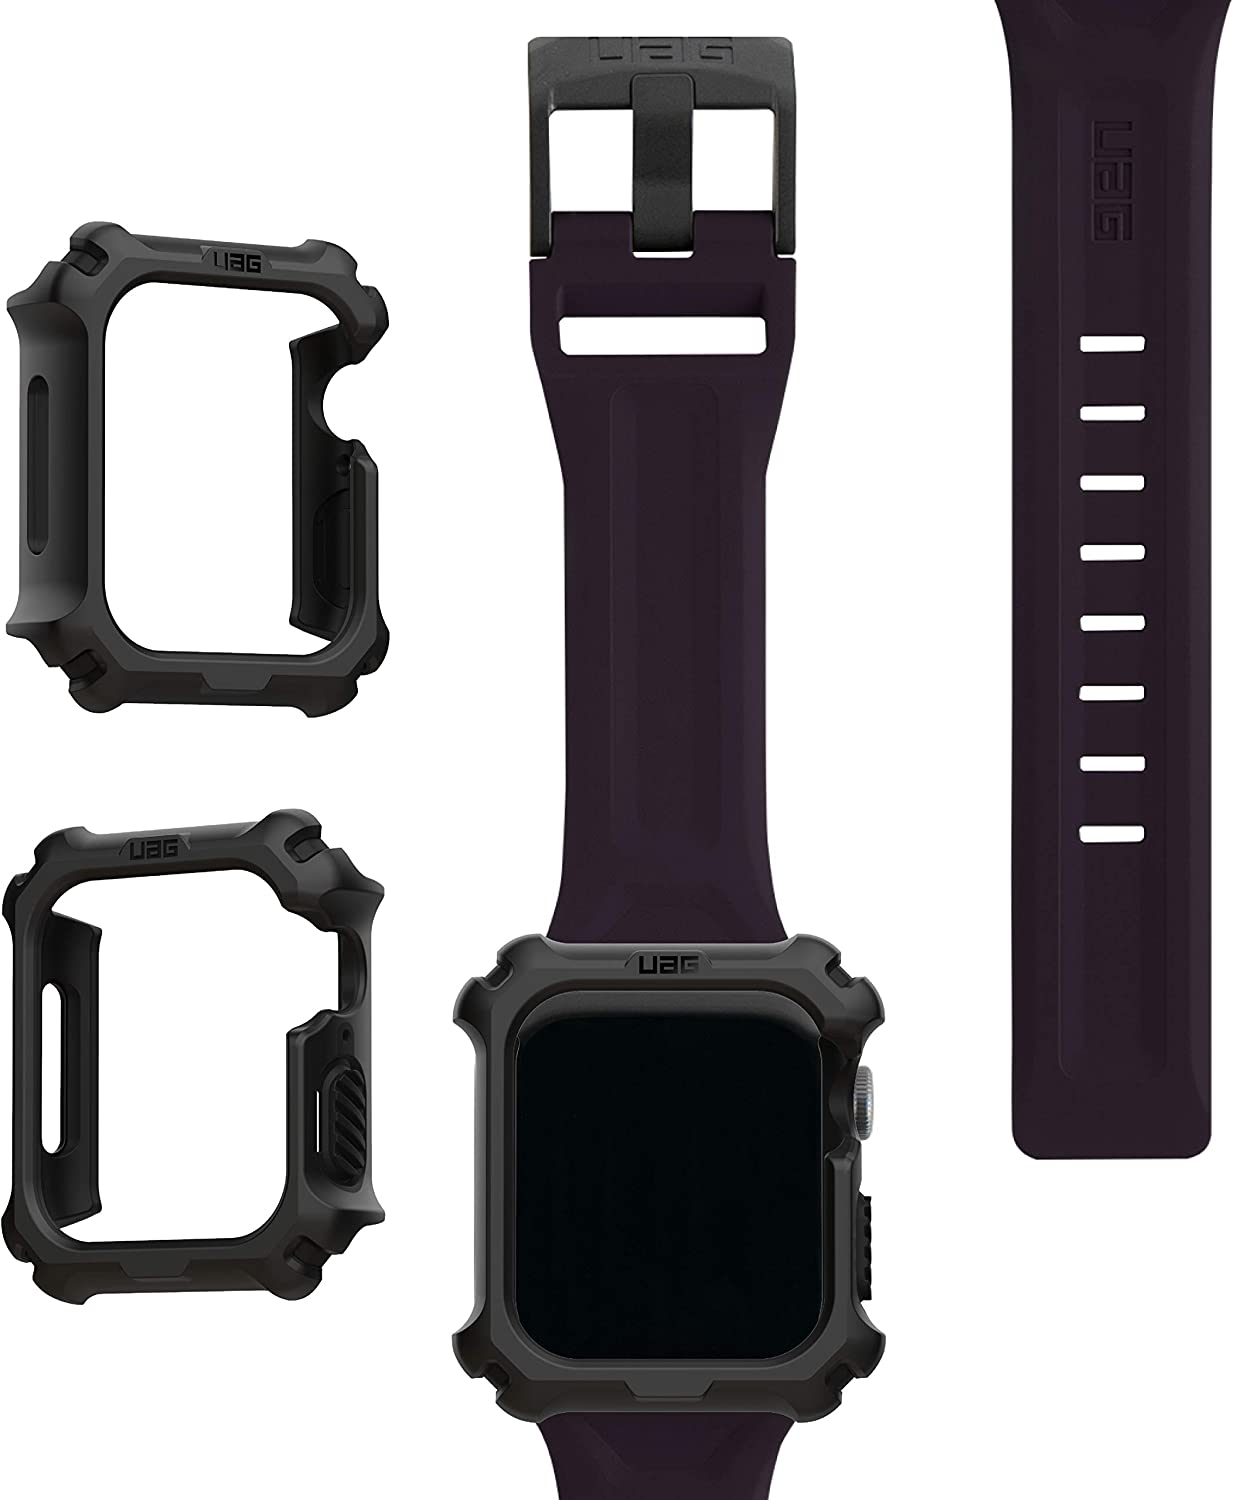 UAG Apple Watch Band 44mm 42mm, iWatch Series 6/5/4/Watch SE Replacement Strap, Scout Eggplant + Apple Watch Case 44mm, iWatch Series 6/5/4/Watch SE Protective Bumper Case, Black/Black